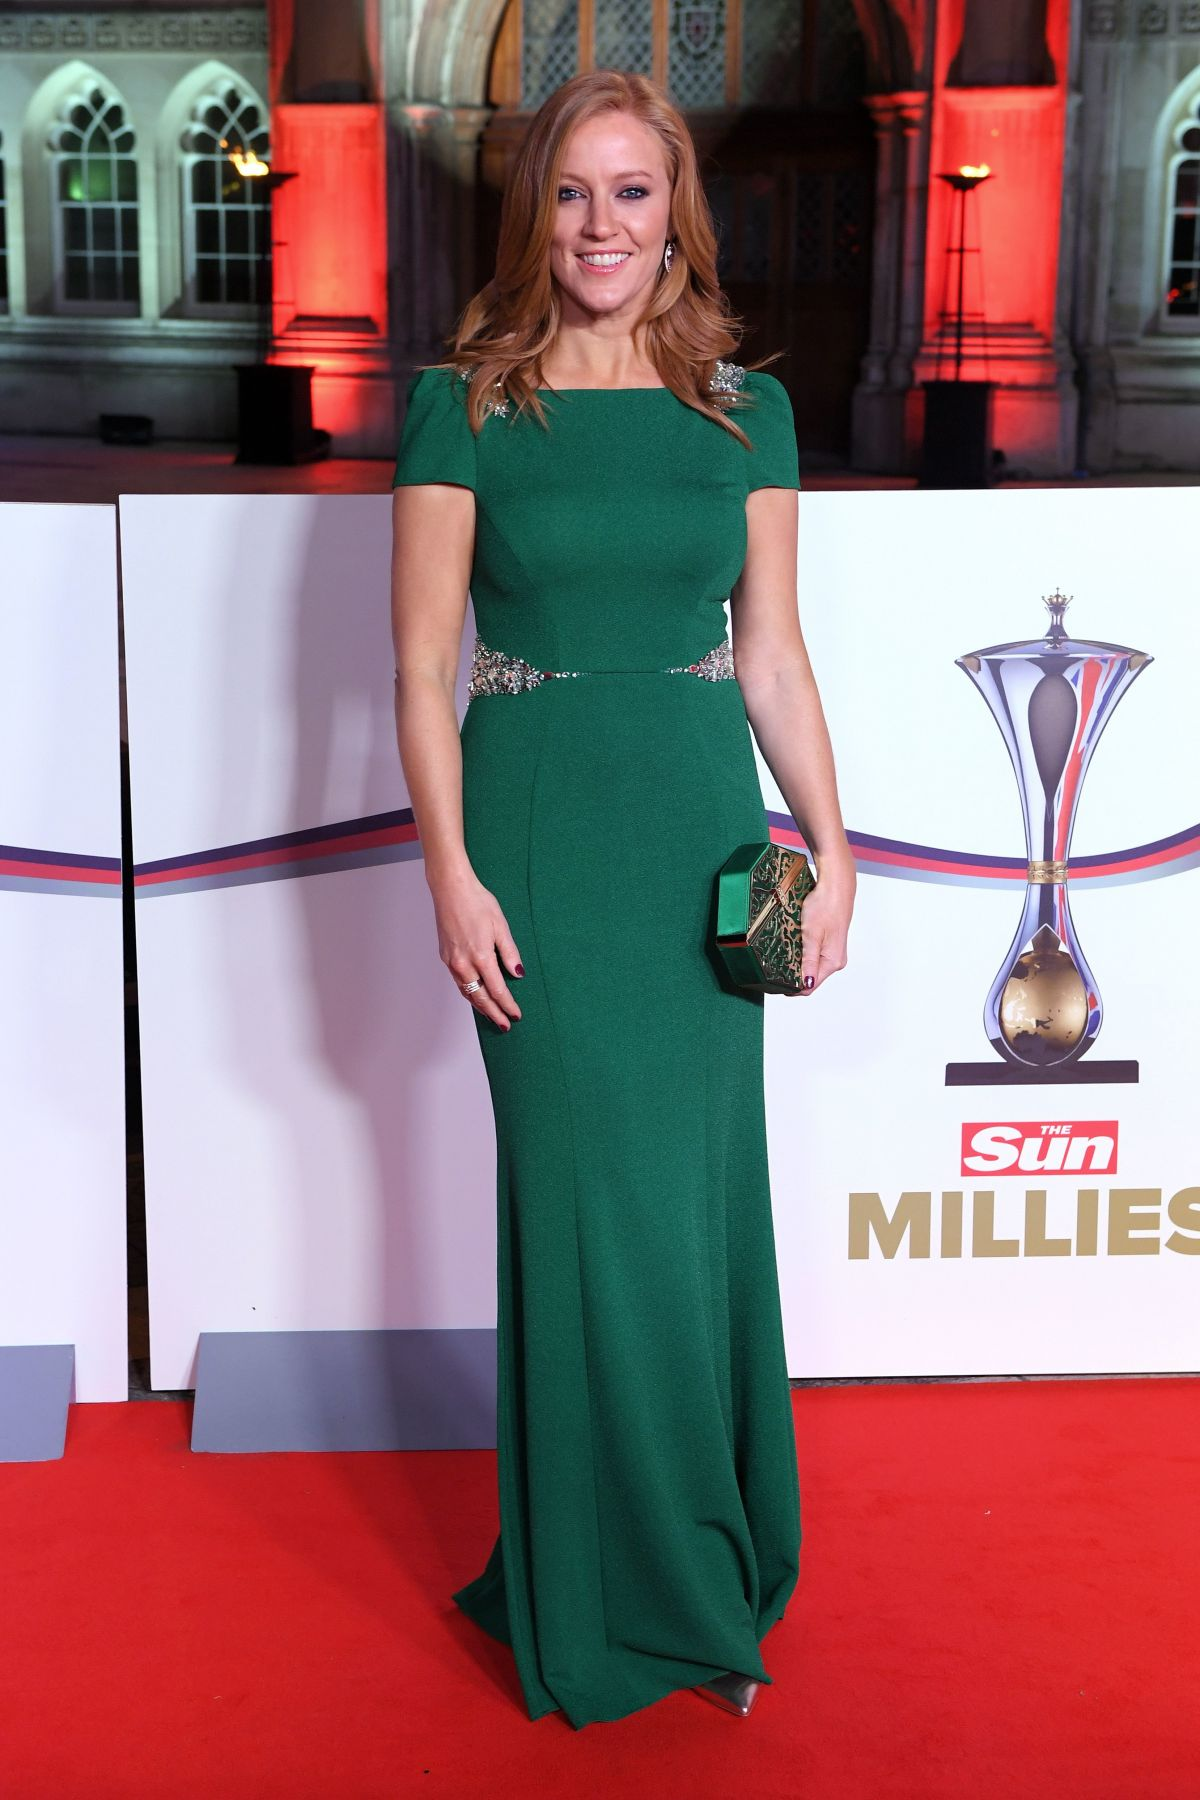 SARAH-JANE MEE at The Sun Military Awards in London 12/14/2016